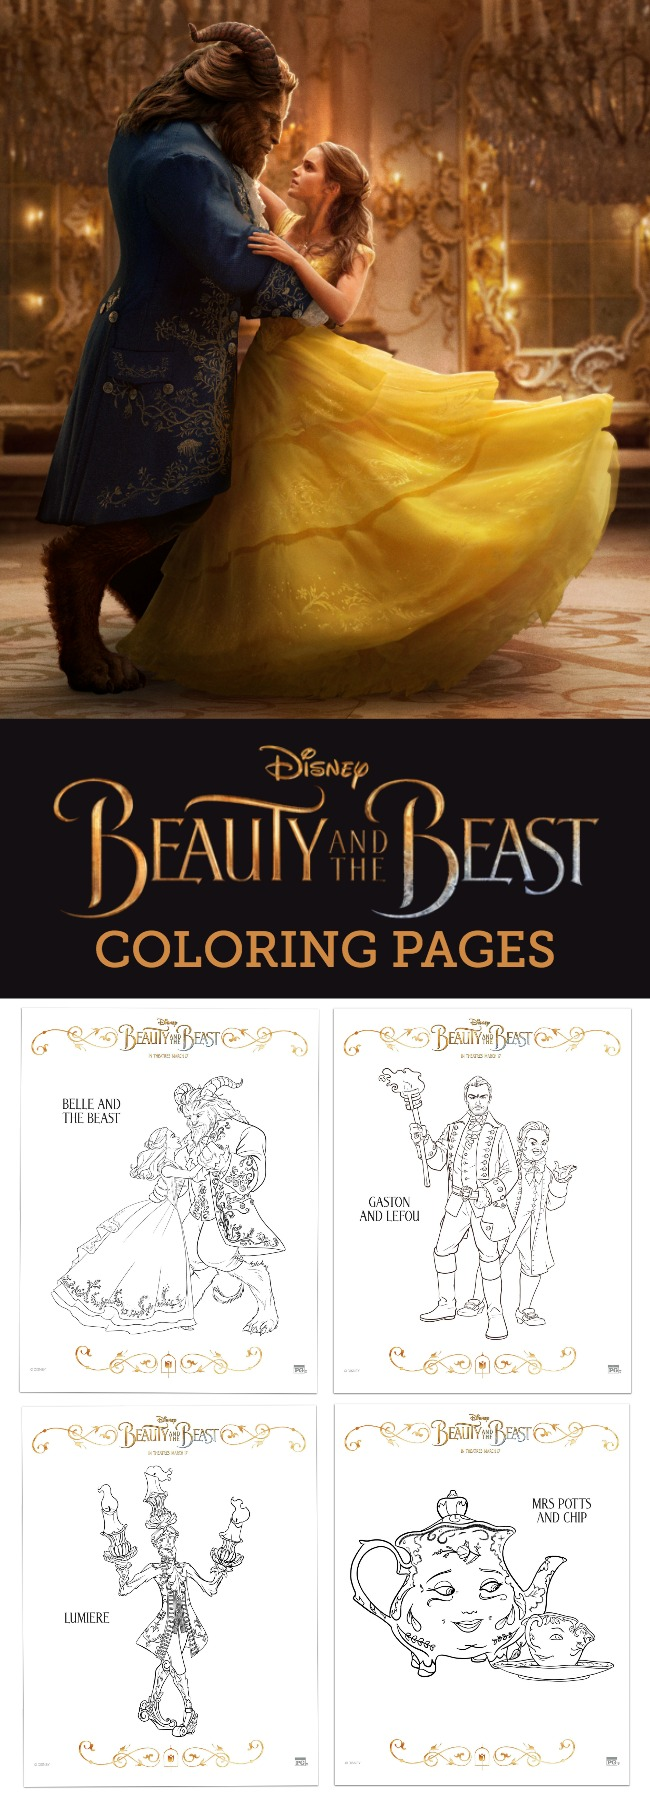 FREE Downloadable Disney Beauty and the Beast Coloring Pages